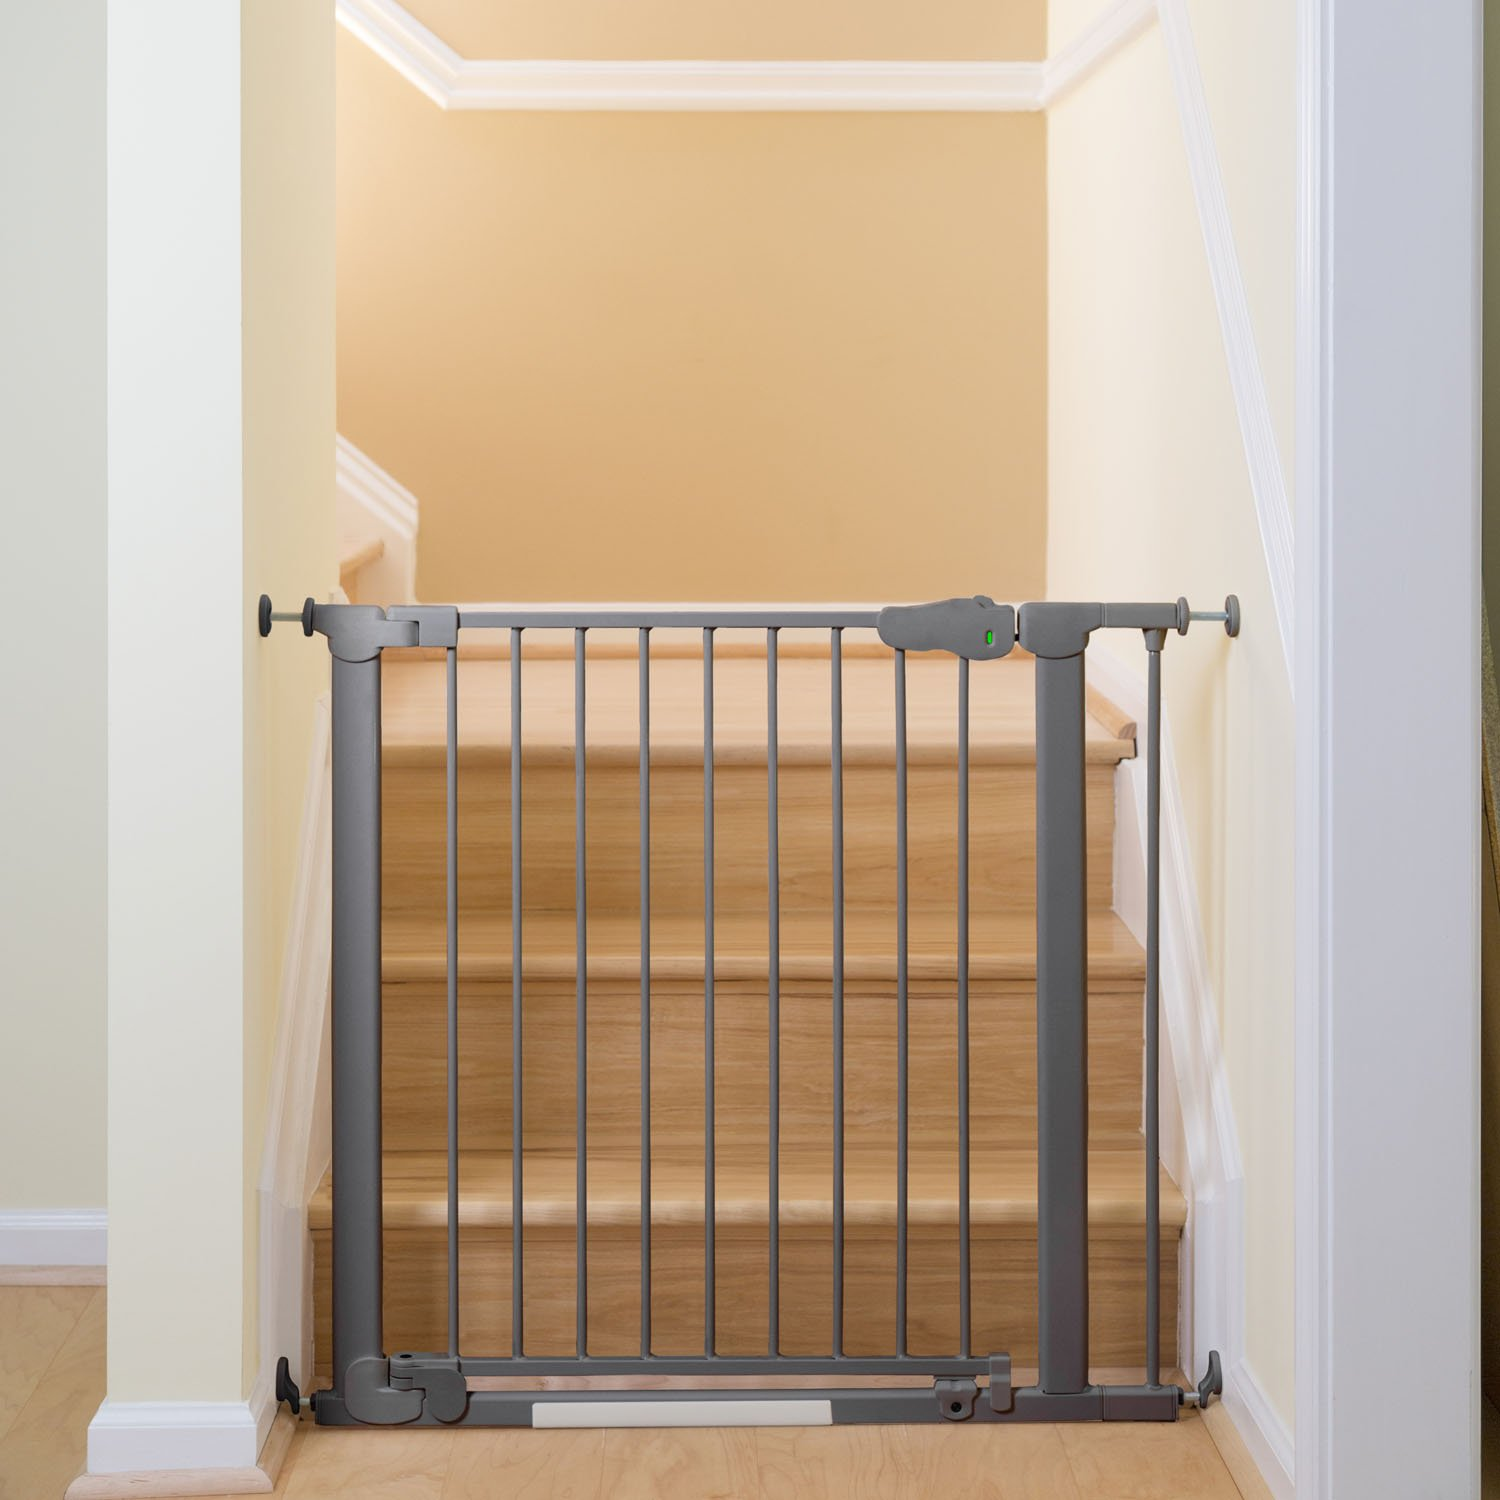 Qdos Auto-Close SafeGate Baby Gate - Professional Grade Meets Tougher European Standards - Automatically Closes and Latches - Magnetic Lock Indicator - Easy Installation   Pressure Mount   Slate